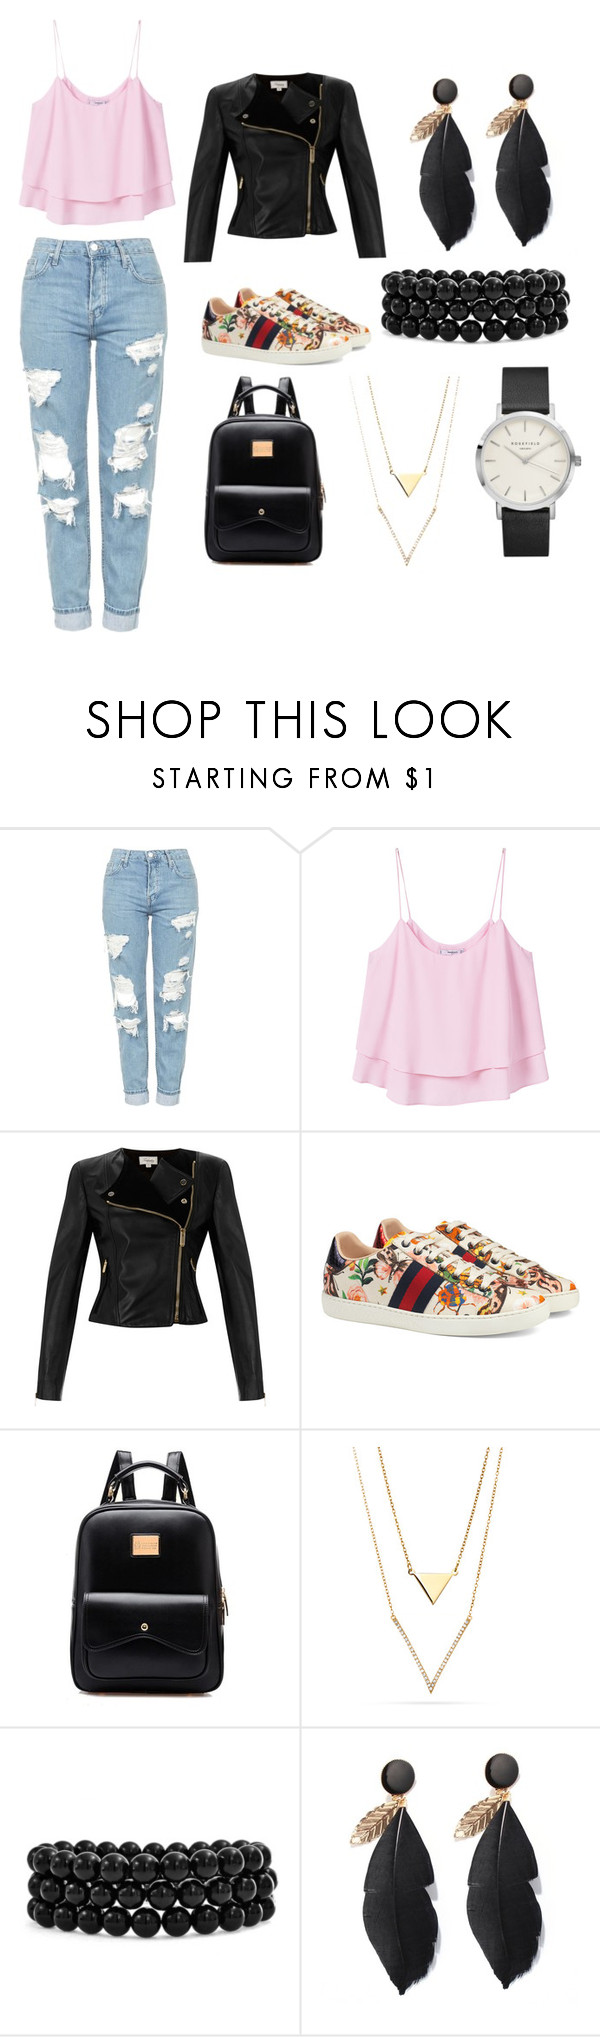 """""""Без названия #6"""" by borodinapolina ❤ liked on Polyvore featuring Topshop, MANGO, Temperley London, Gucci and Bling Jewelry"""